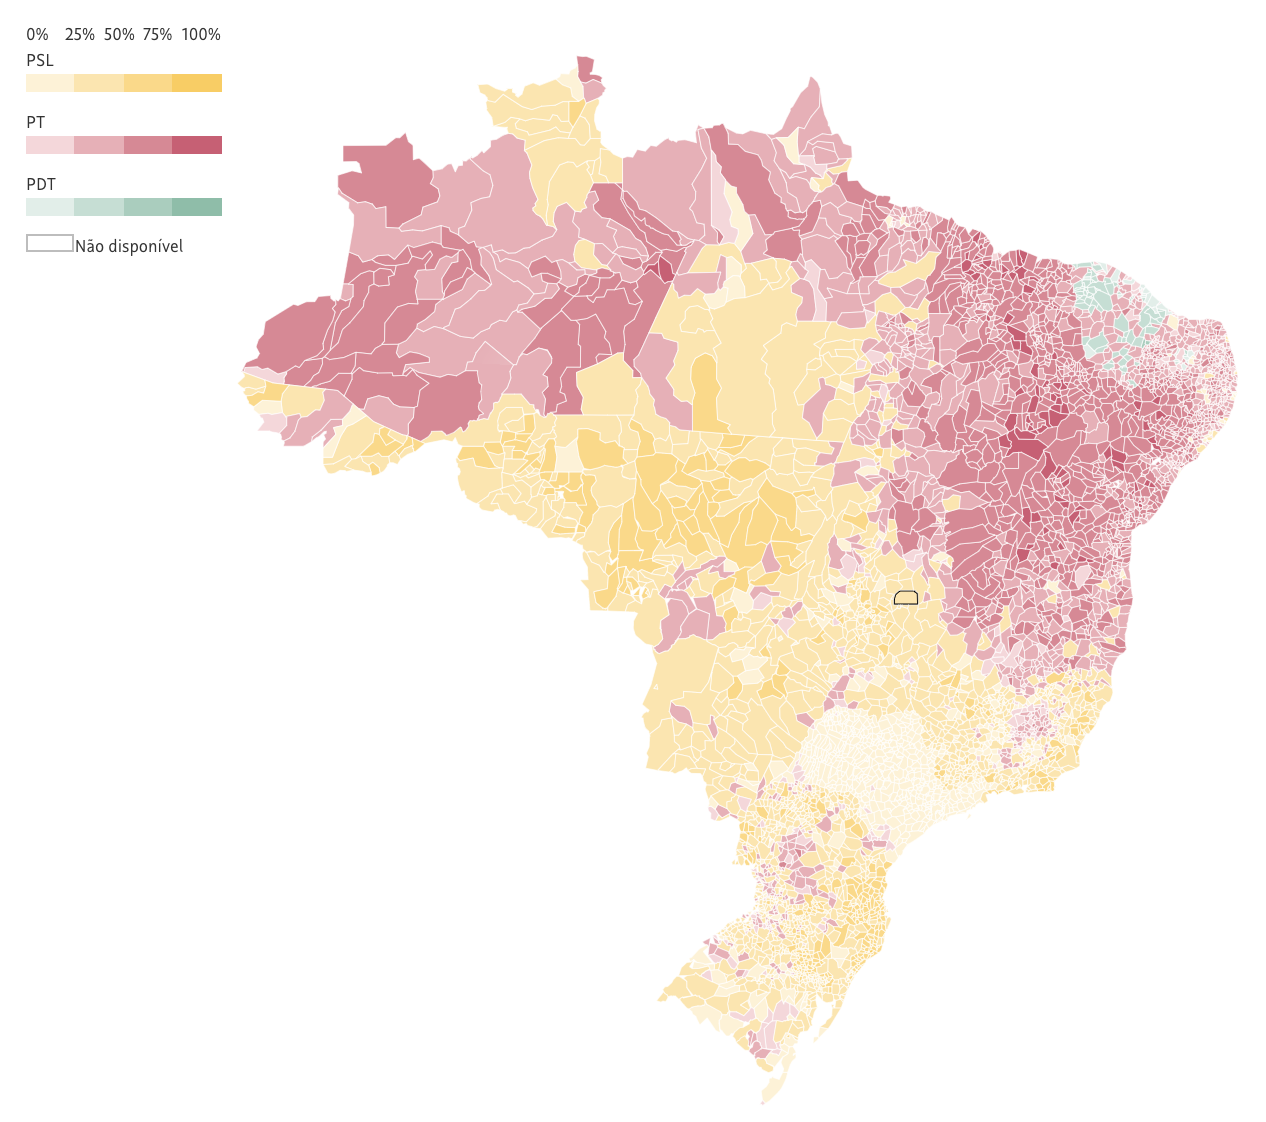 winning over 46 of the voter jair bolsonaro overperformed the polls and set himself up well for the second round his psl won 51 congressional seats